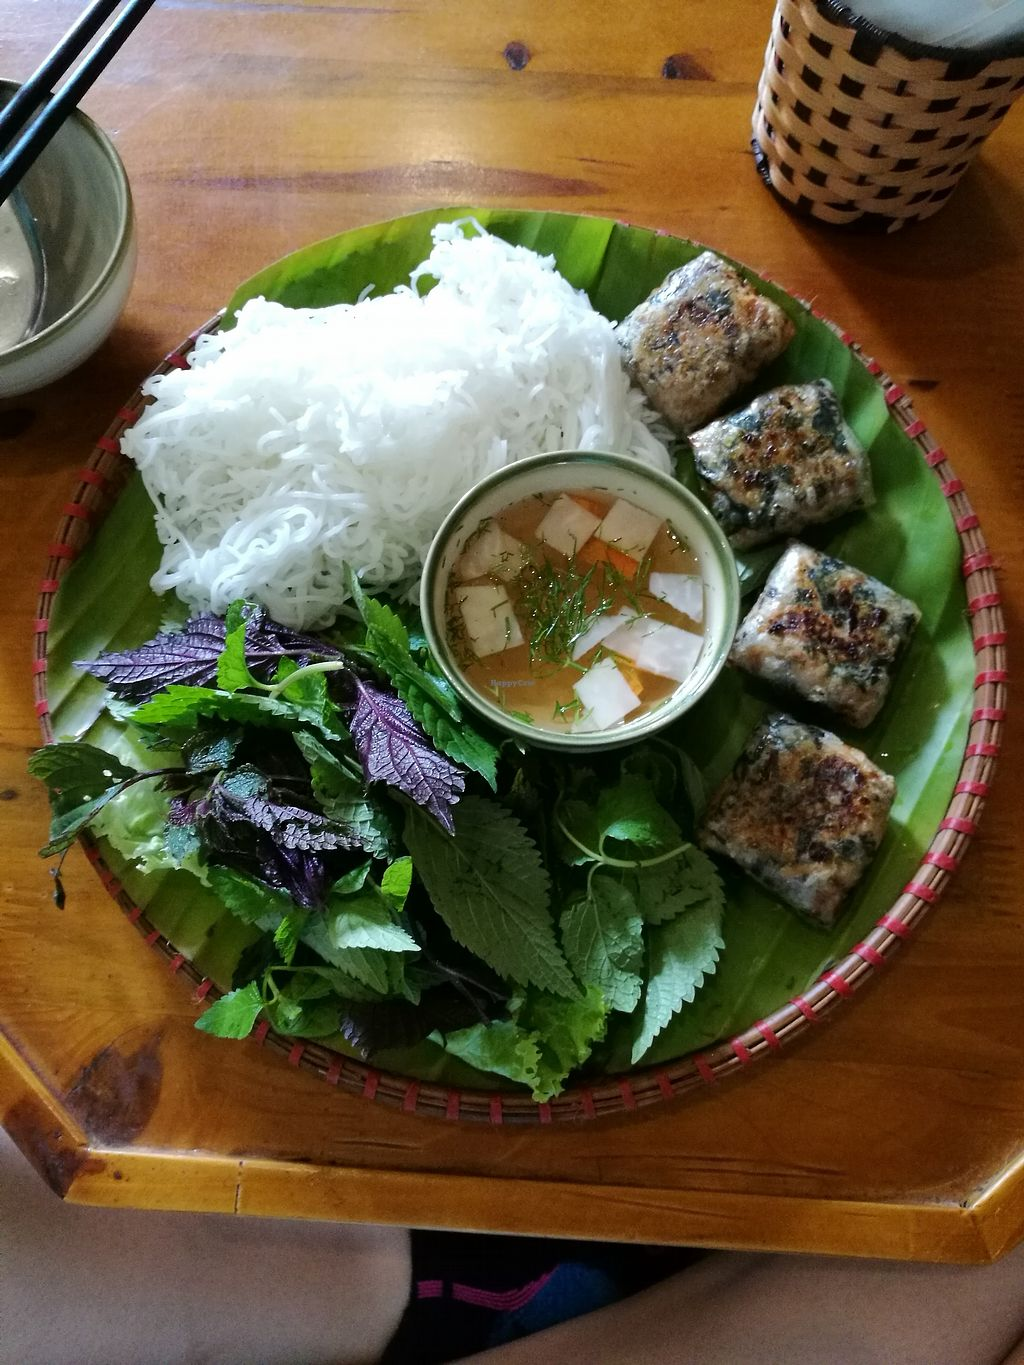 """Photo of Tinh Tam Tra  by <a href=""""/members/profile/VolleyMacaroni"""">VolleyMacaroni</a> <br/>Bun Nem with vegan fishy rolls <br/> April 5, 2018  - <a href='/contact/abuse/image/95959/380962'>Report</a>"""